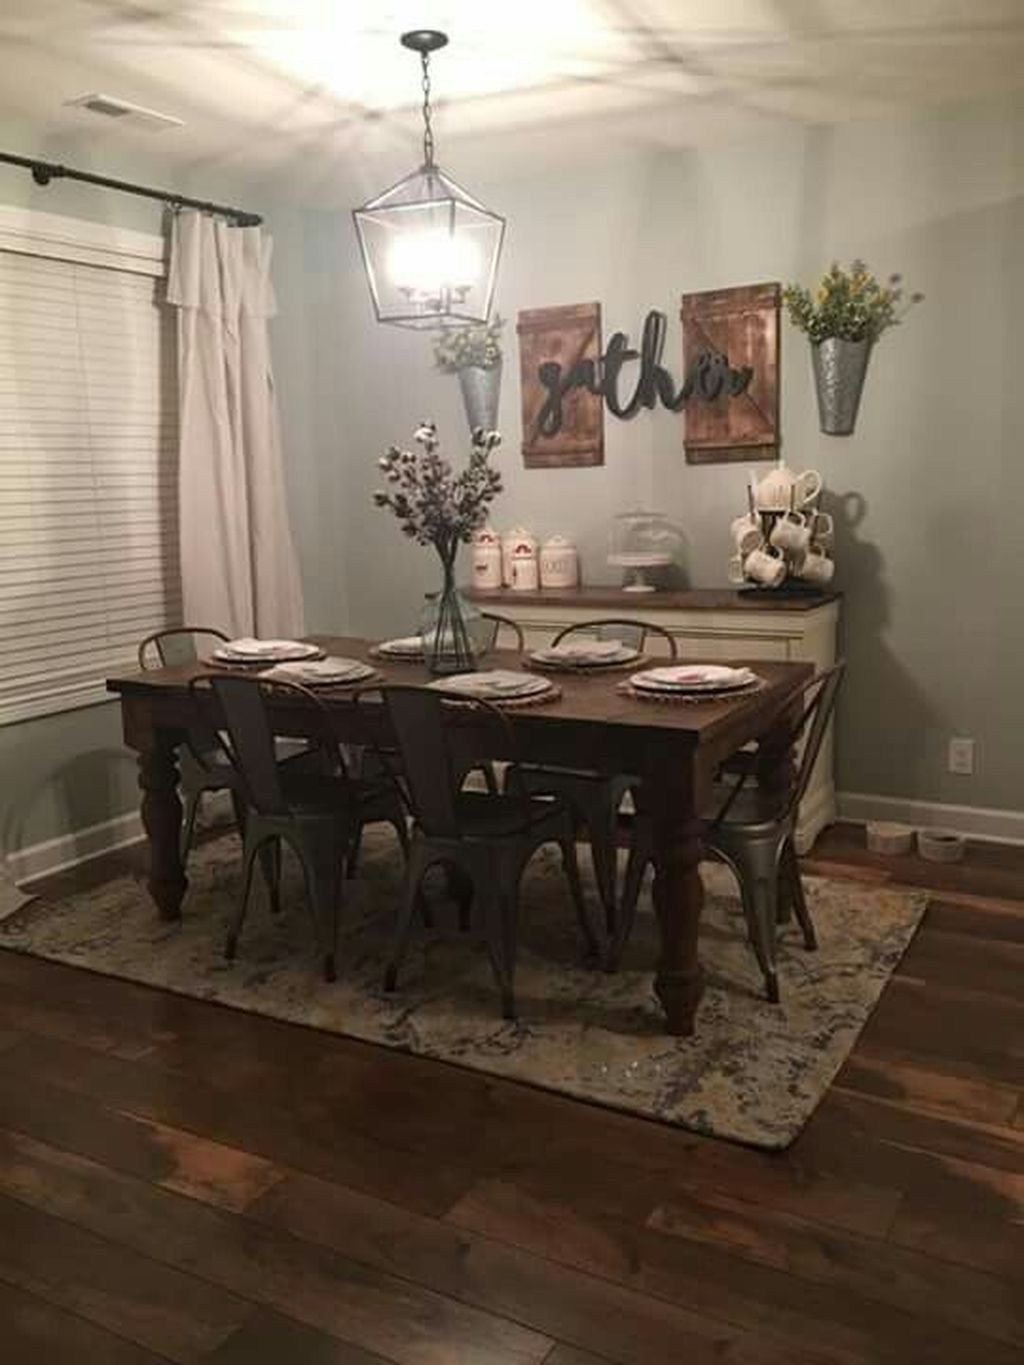 AWESOME STUNNING RUSTIC FARMHOUSE DINING ROOM SET ... on Farmhouse Dining Room Curtain Ideas  id=99648